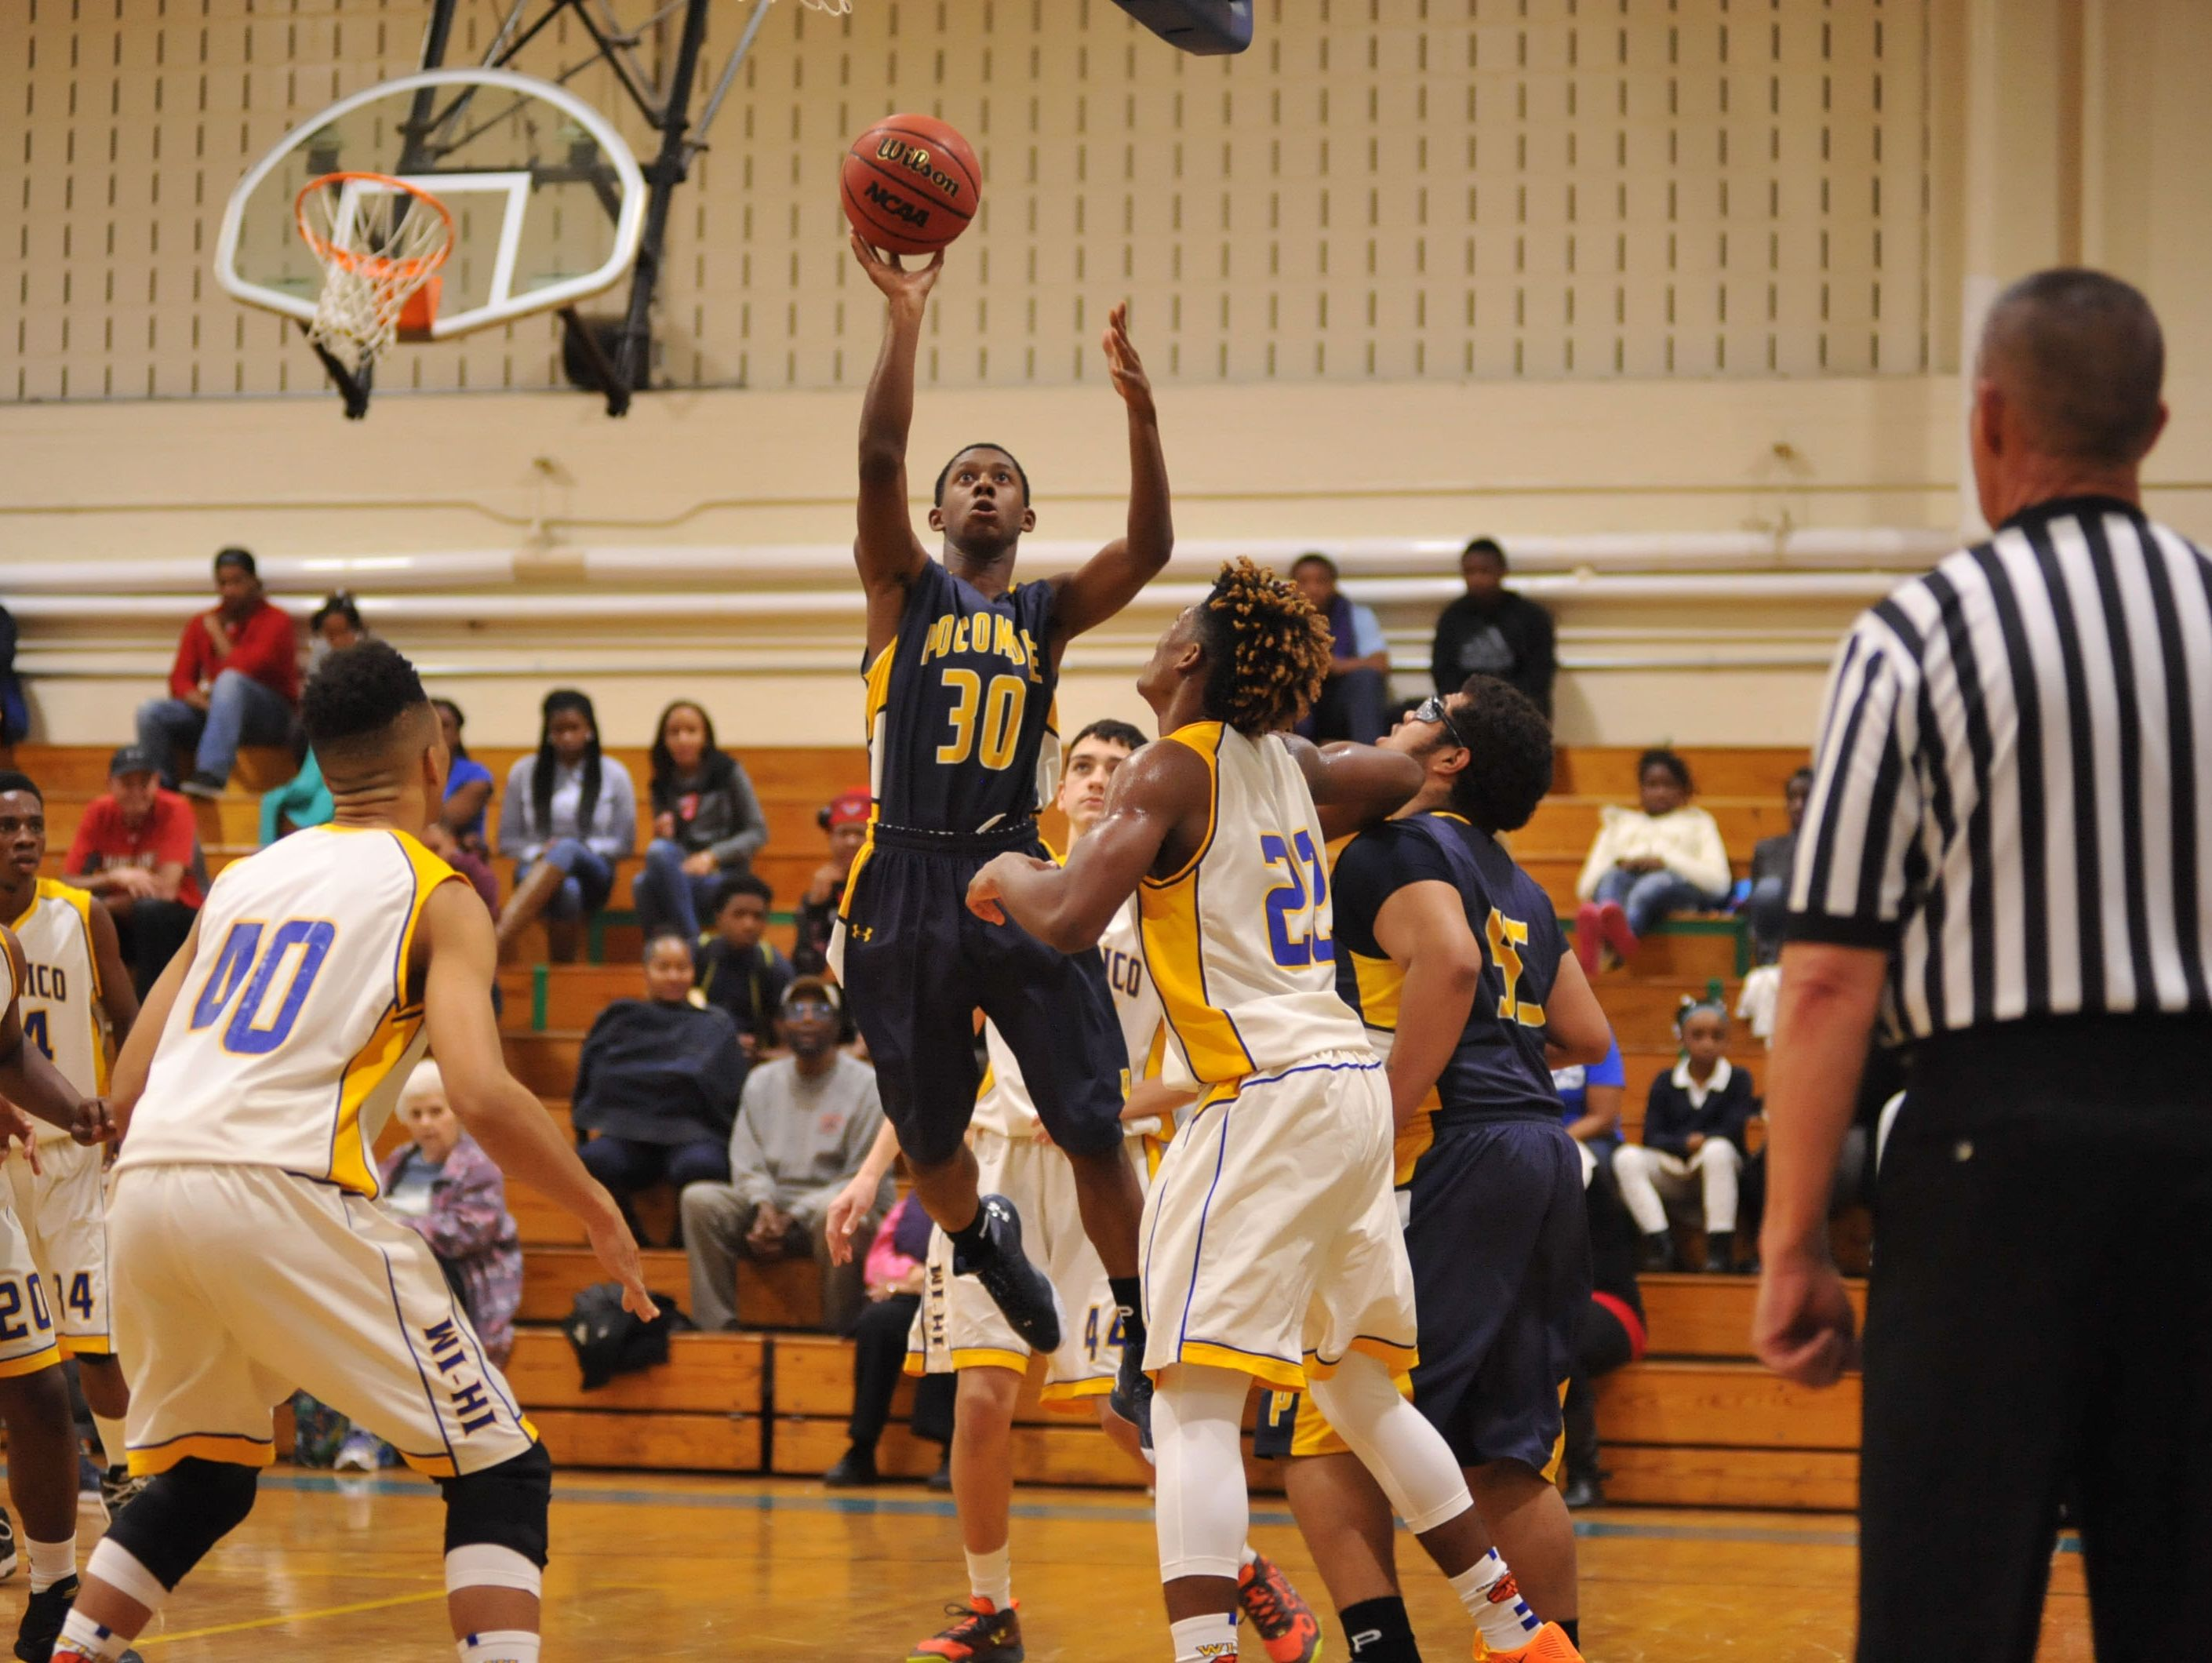 Pocomoke's Jameel Baldwin with the jumper against Wi-Hi on Thursday, December 10. at Wicomico High School.